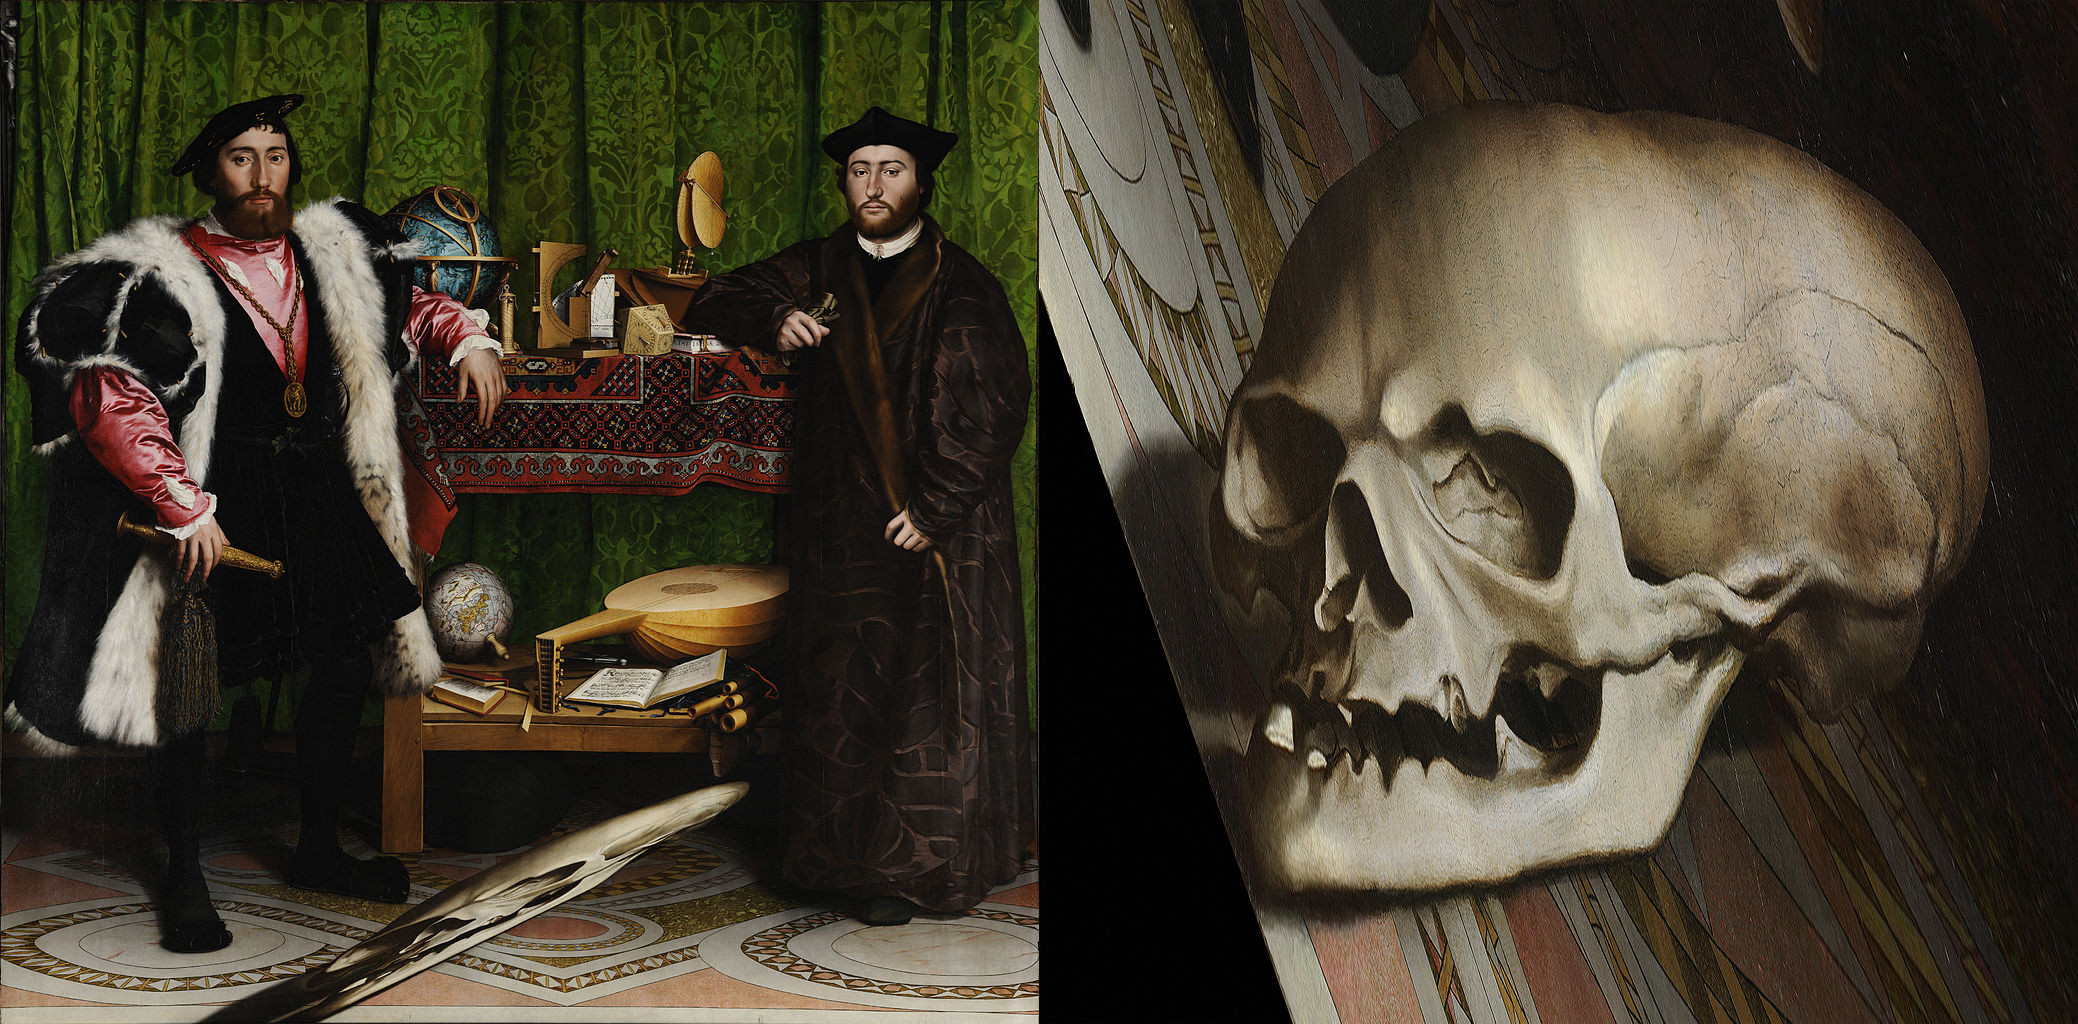 a visual analysis of the painting the ambassadors by hans holbein the younger Analysis of hans holbein the younger, the ambassadors admin | august 26, 2016 in this task, you will write an analysis (suggested length of 3-5 pages) of one work from the disciplines of visual art or music.